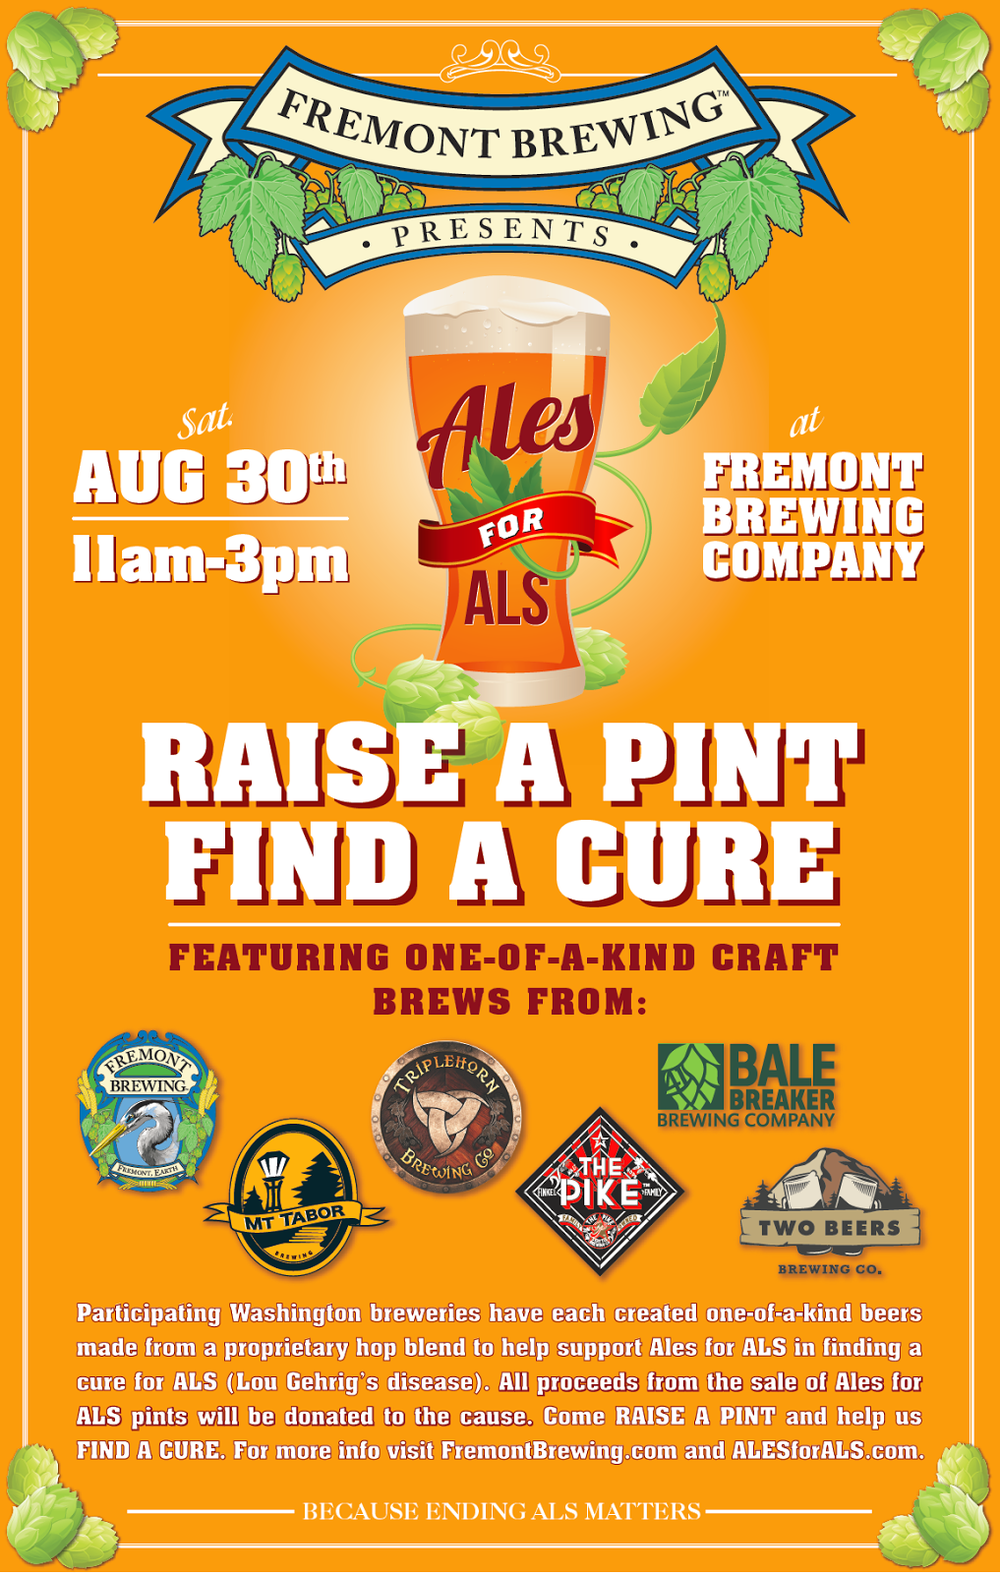 image of ALES for ALS courtesy Fremont Brewing Company